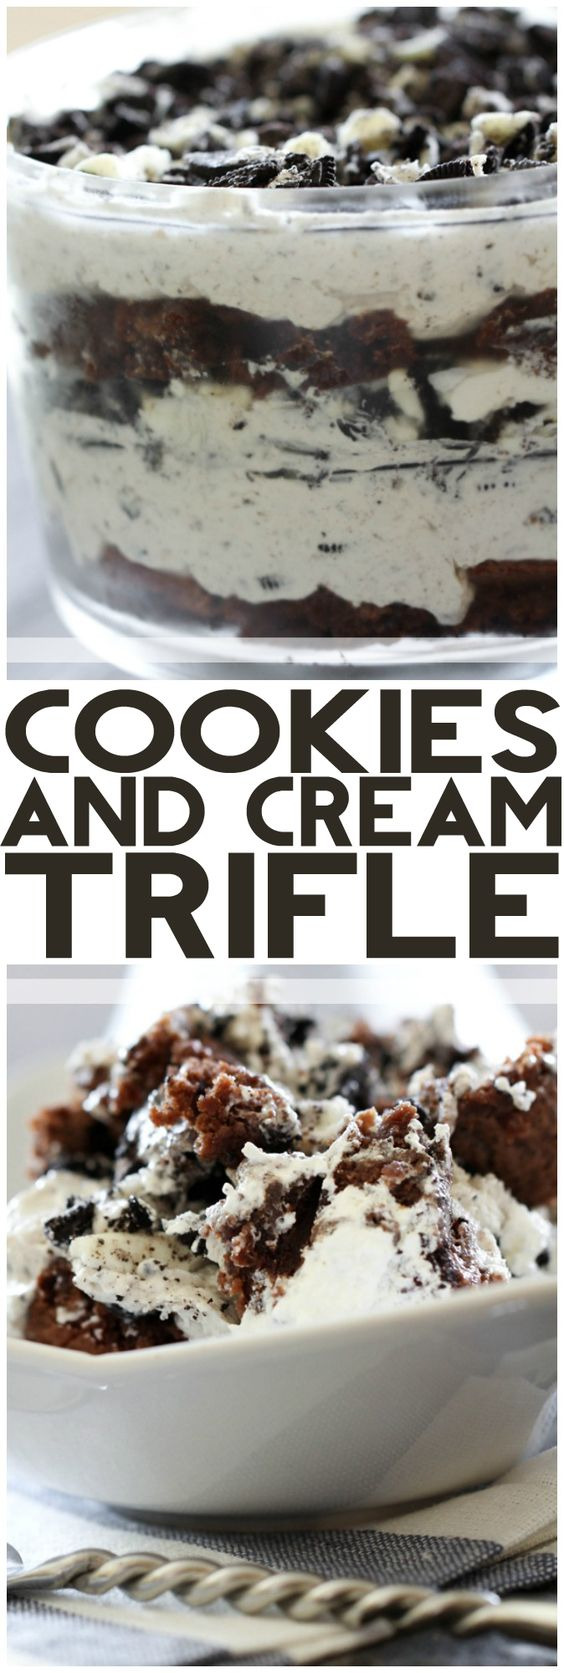 Cookies and Cream Trifle from chef-in-training.com ...This recipe is jam packed with chocolatey and creamy goodness that will completely WOW your company!